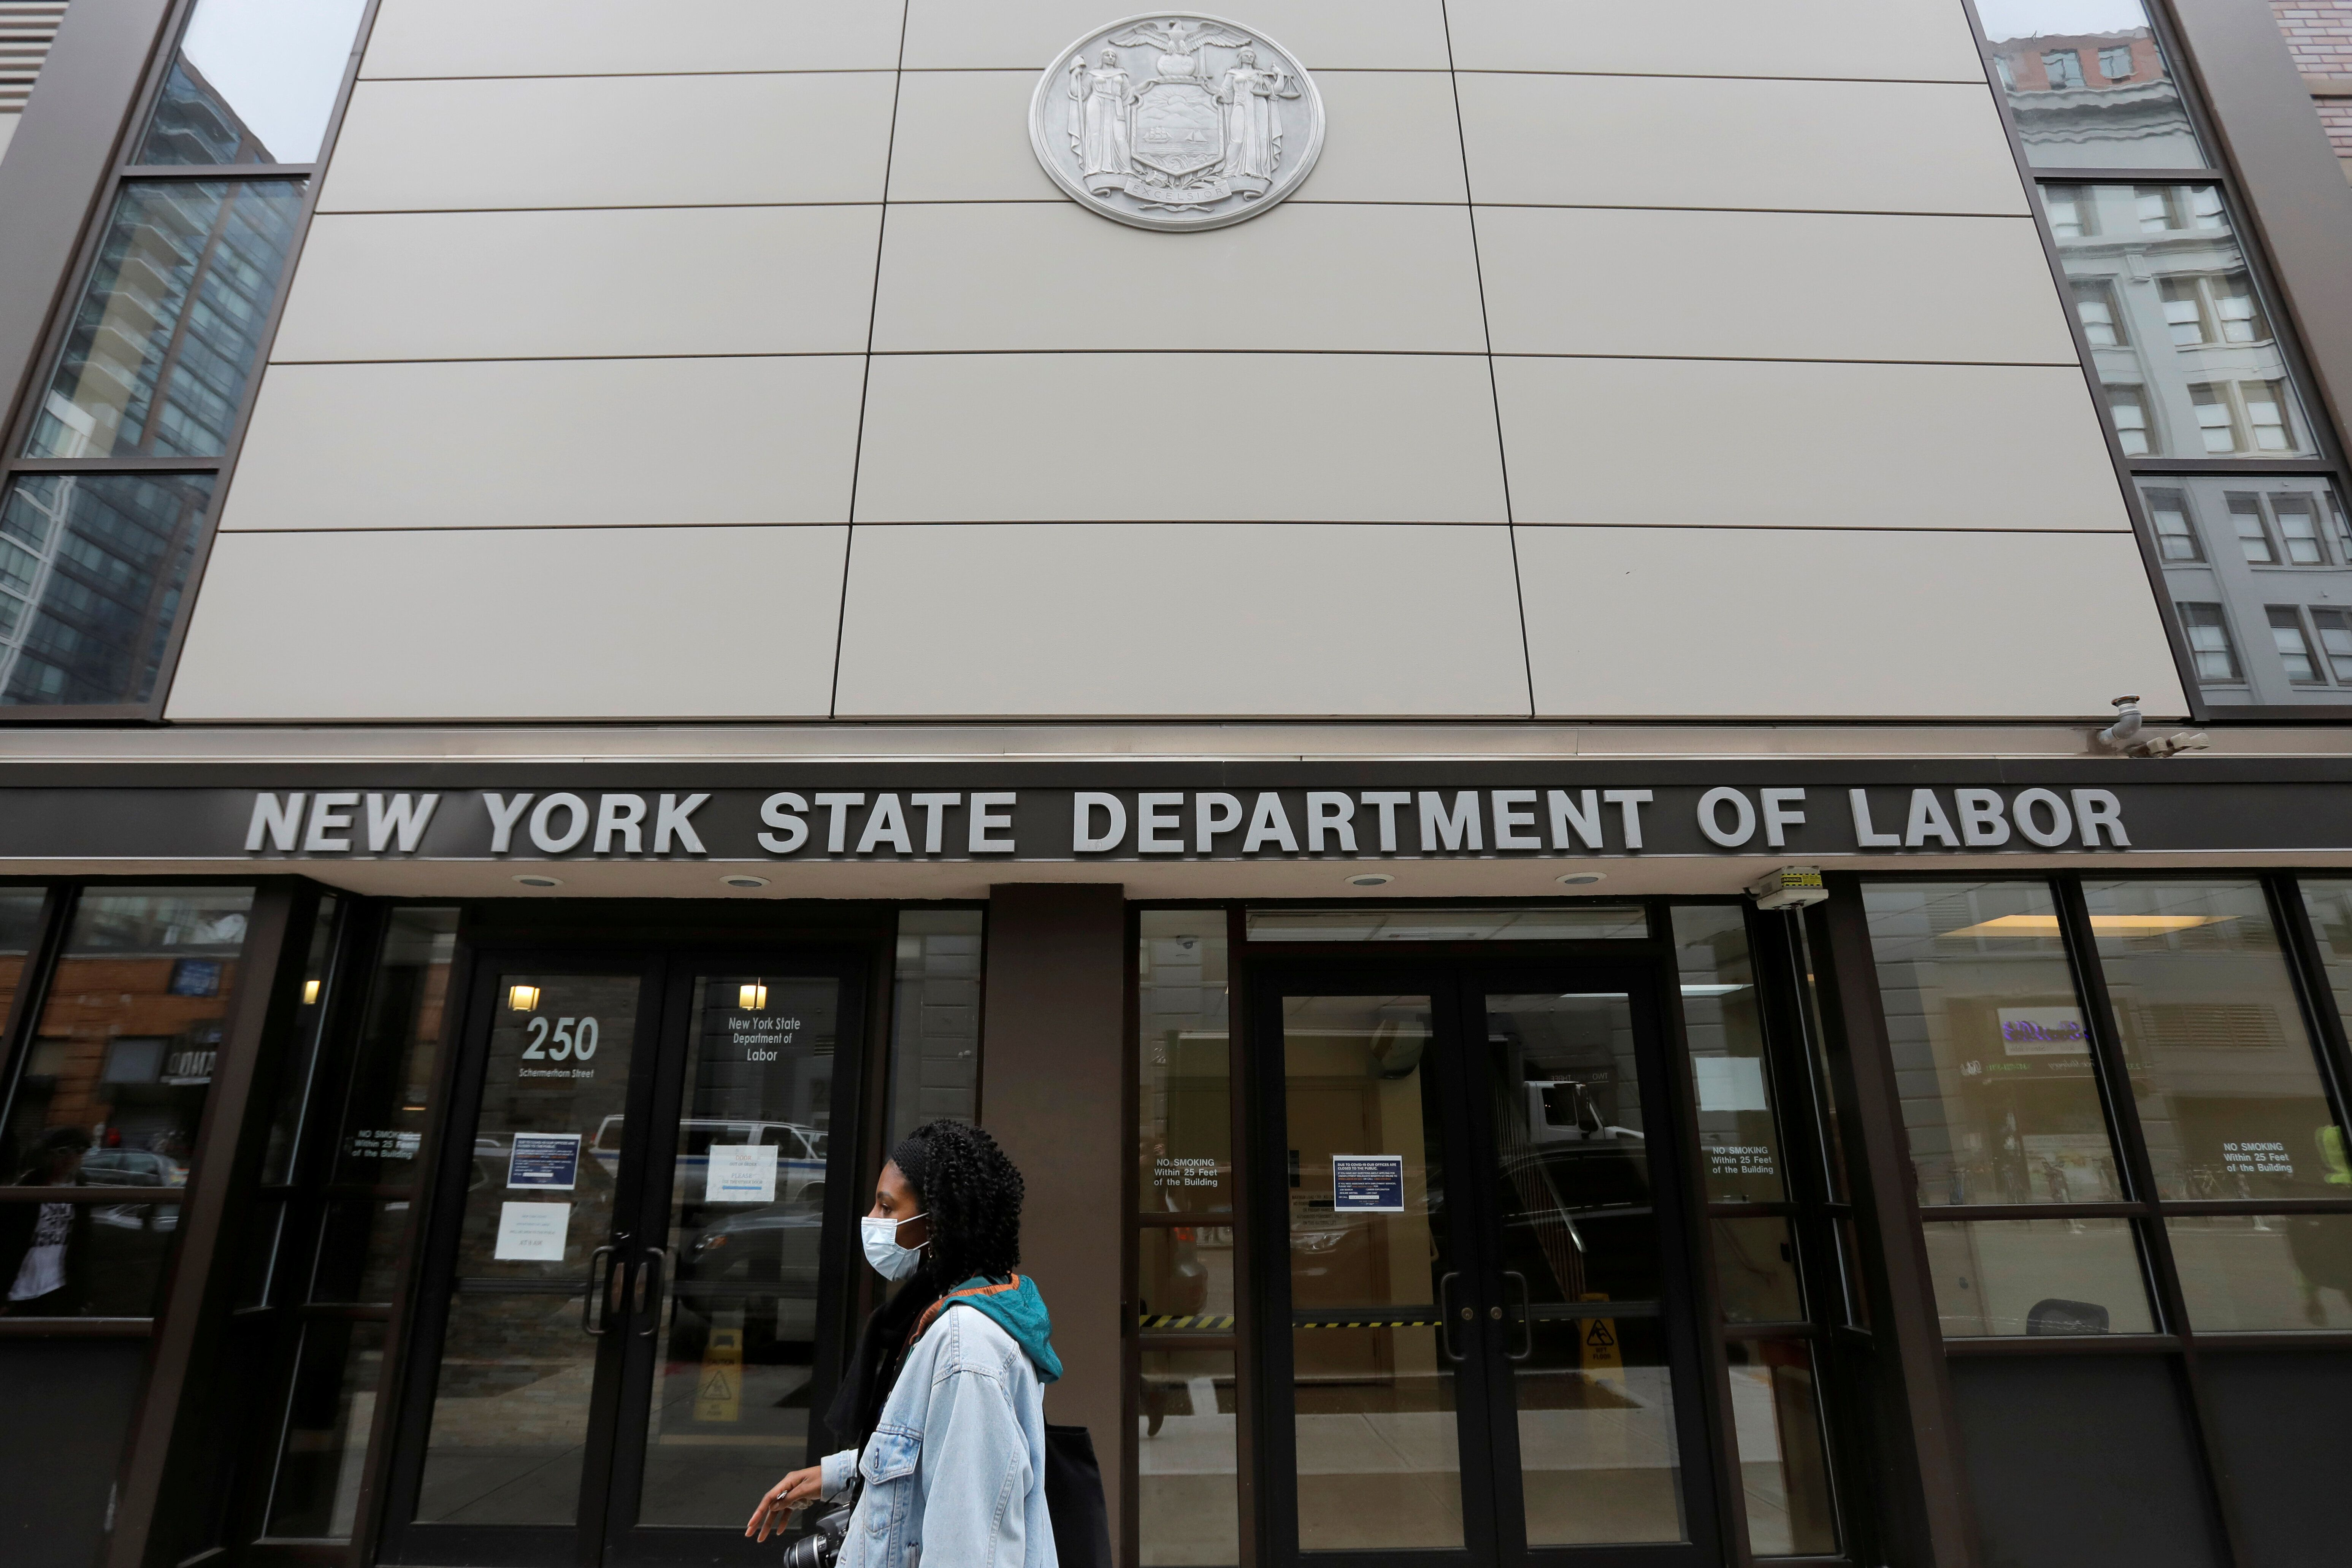 A person walks by the entrance of the New York State Department of Labor offices, which closed to the public due to the coron